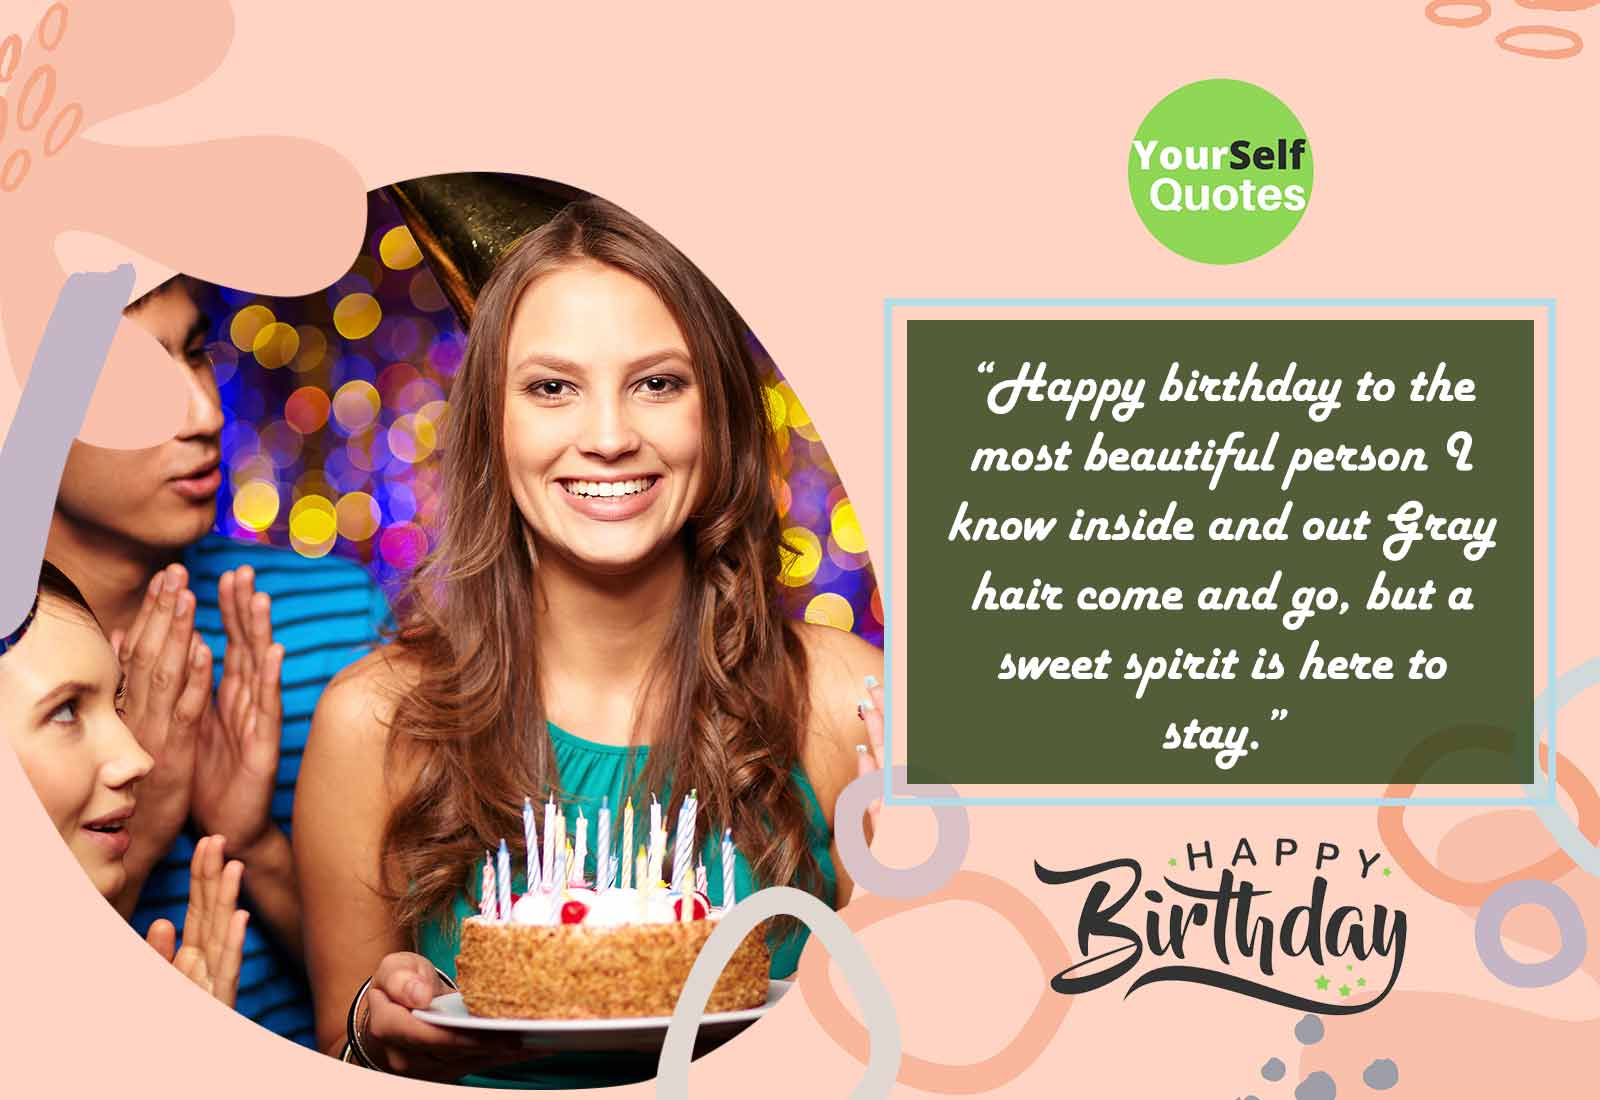 Happy Birthday Wishes Quotes For Friends Family And Loved Ones